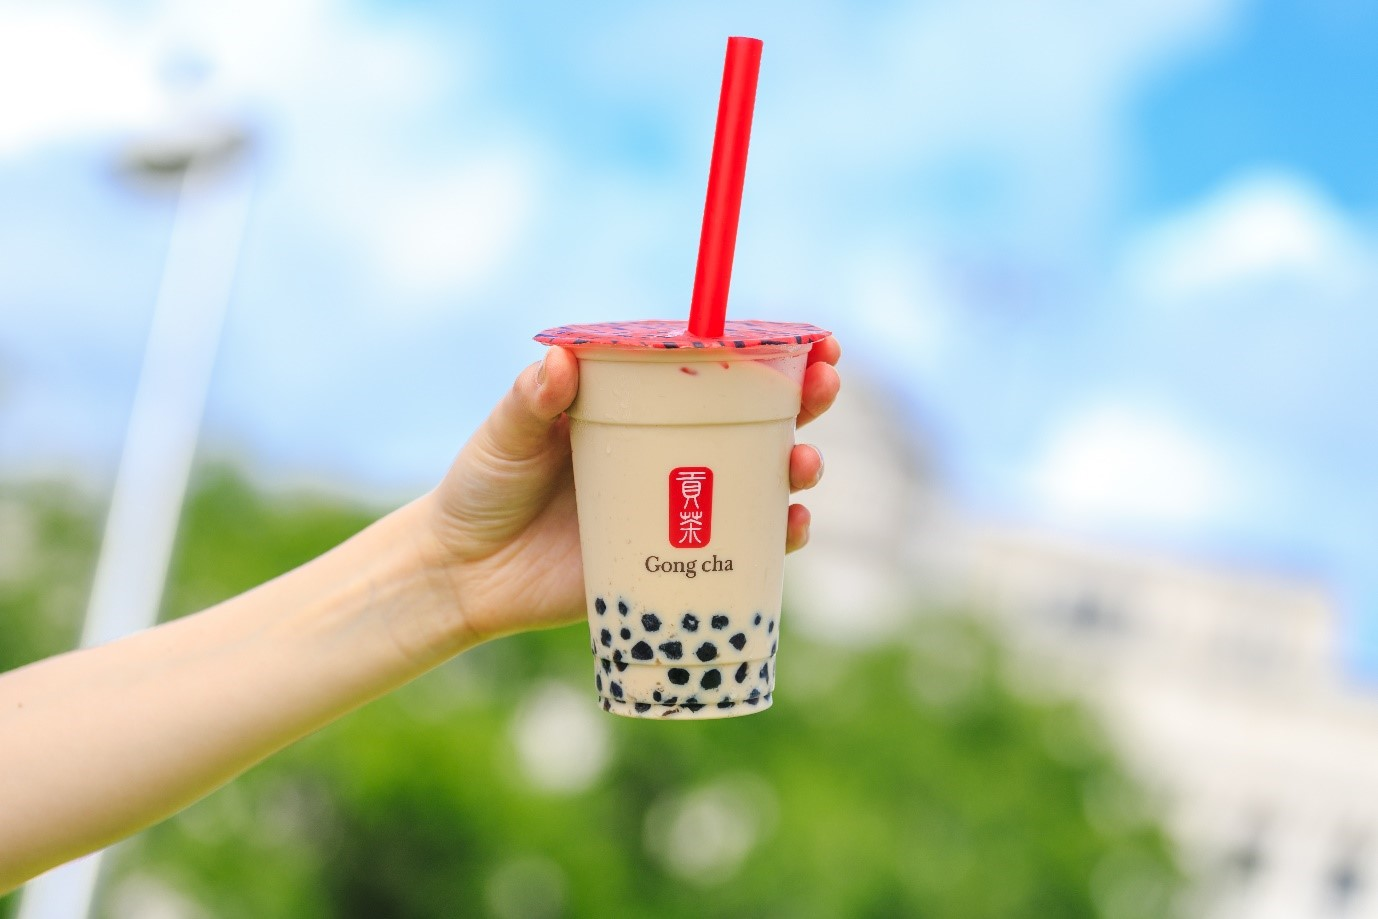 Taiwanese Premium Bubble Tea Gong Cha Comes to London's Covent Garden this August